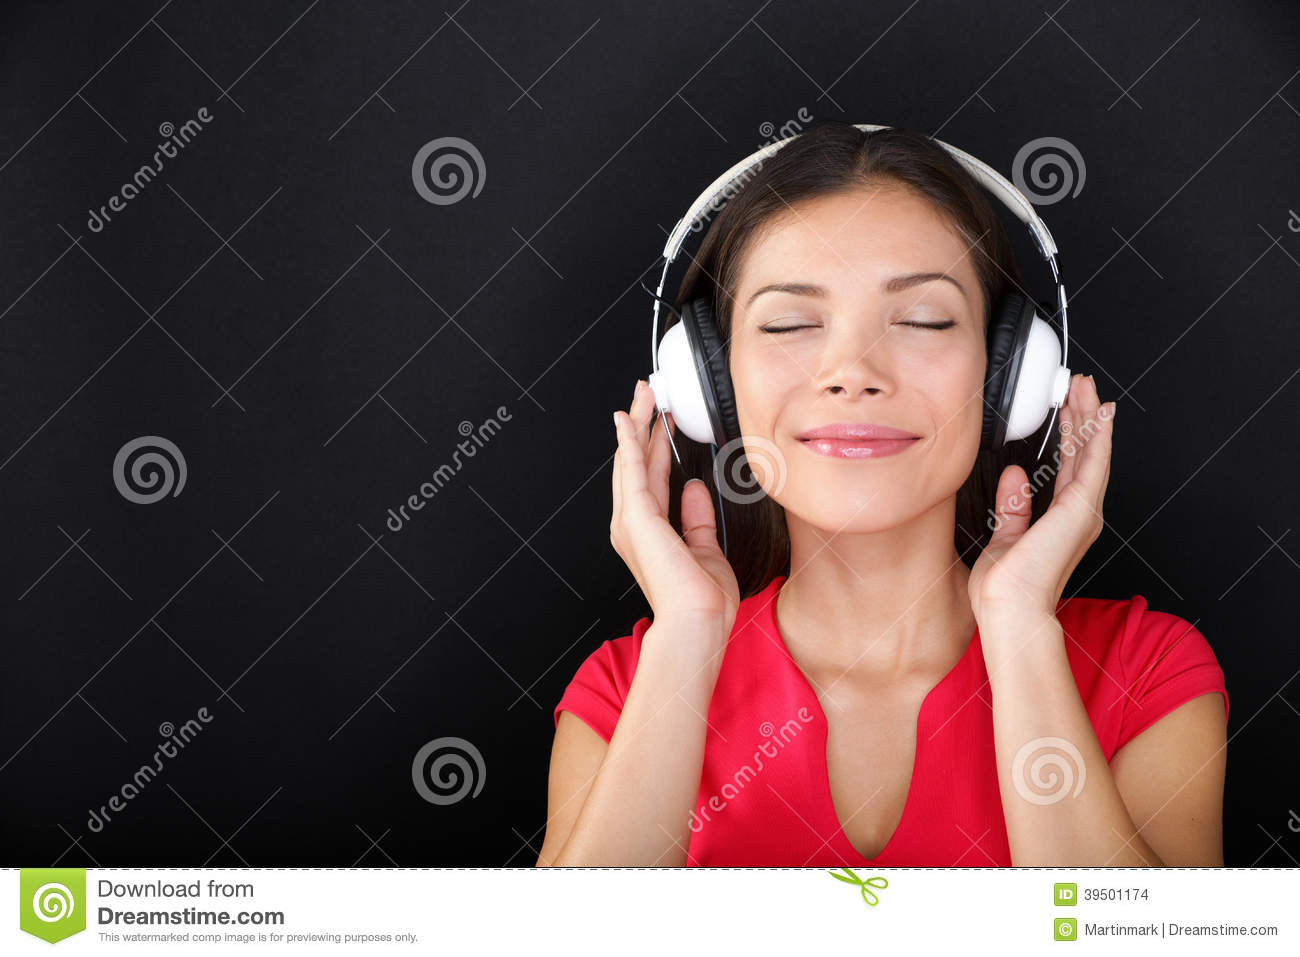 Blissful beautiful woman listening to music